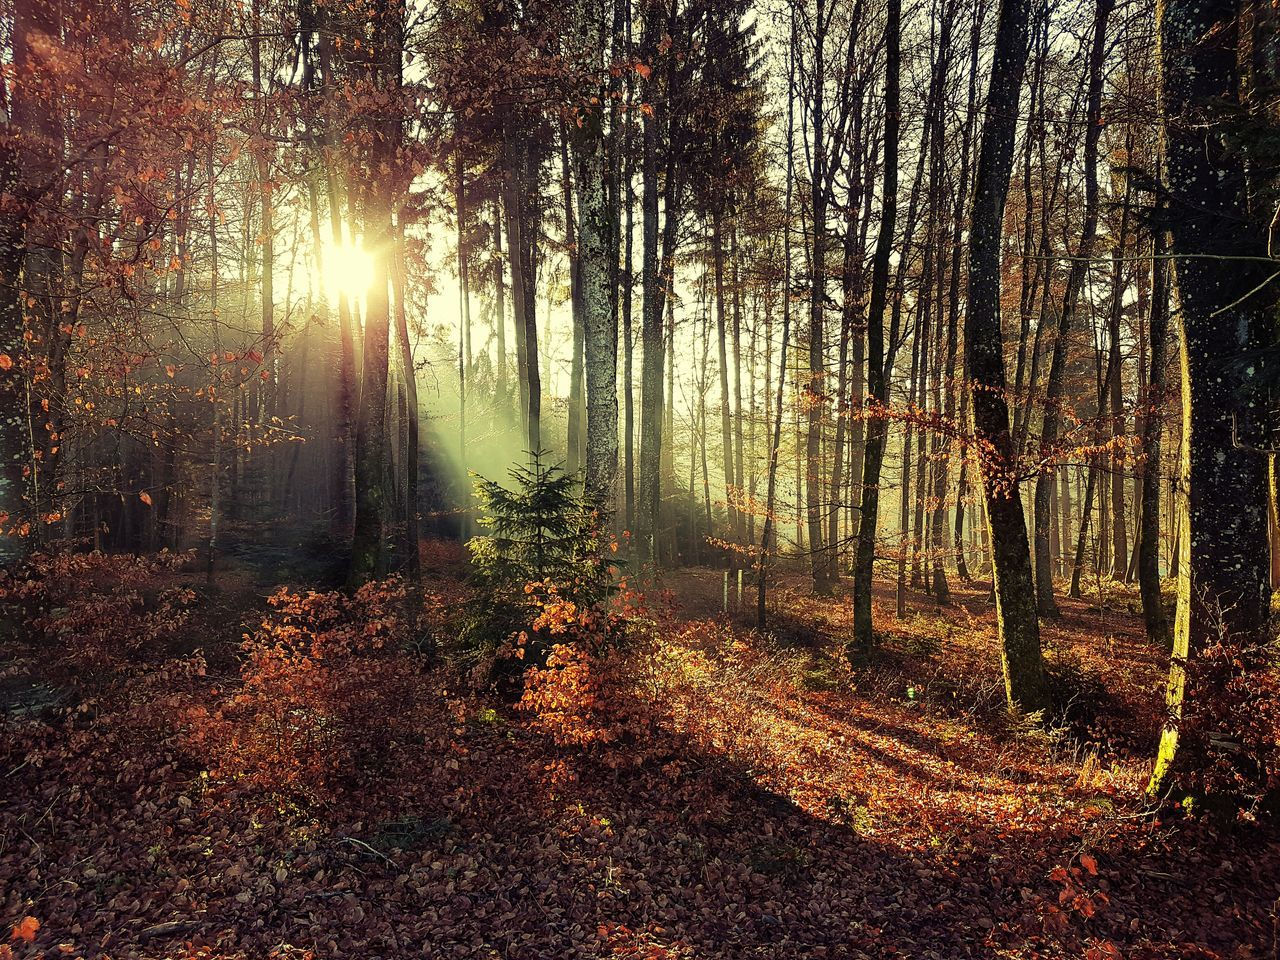 forest, tree, nature, tranquil scene, tranquility, autumn, tree trunk, no people, beauty in nature, scenics, change, day, woodland, sunlight, landscape, growth, branch, outdoors